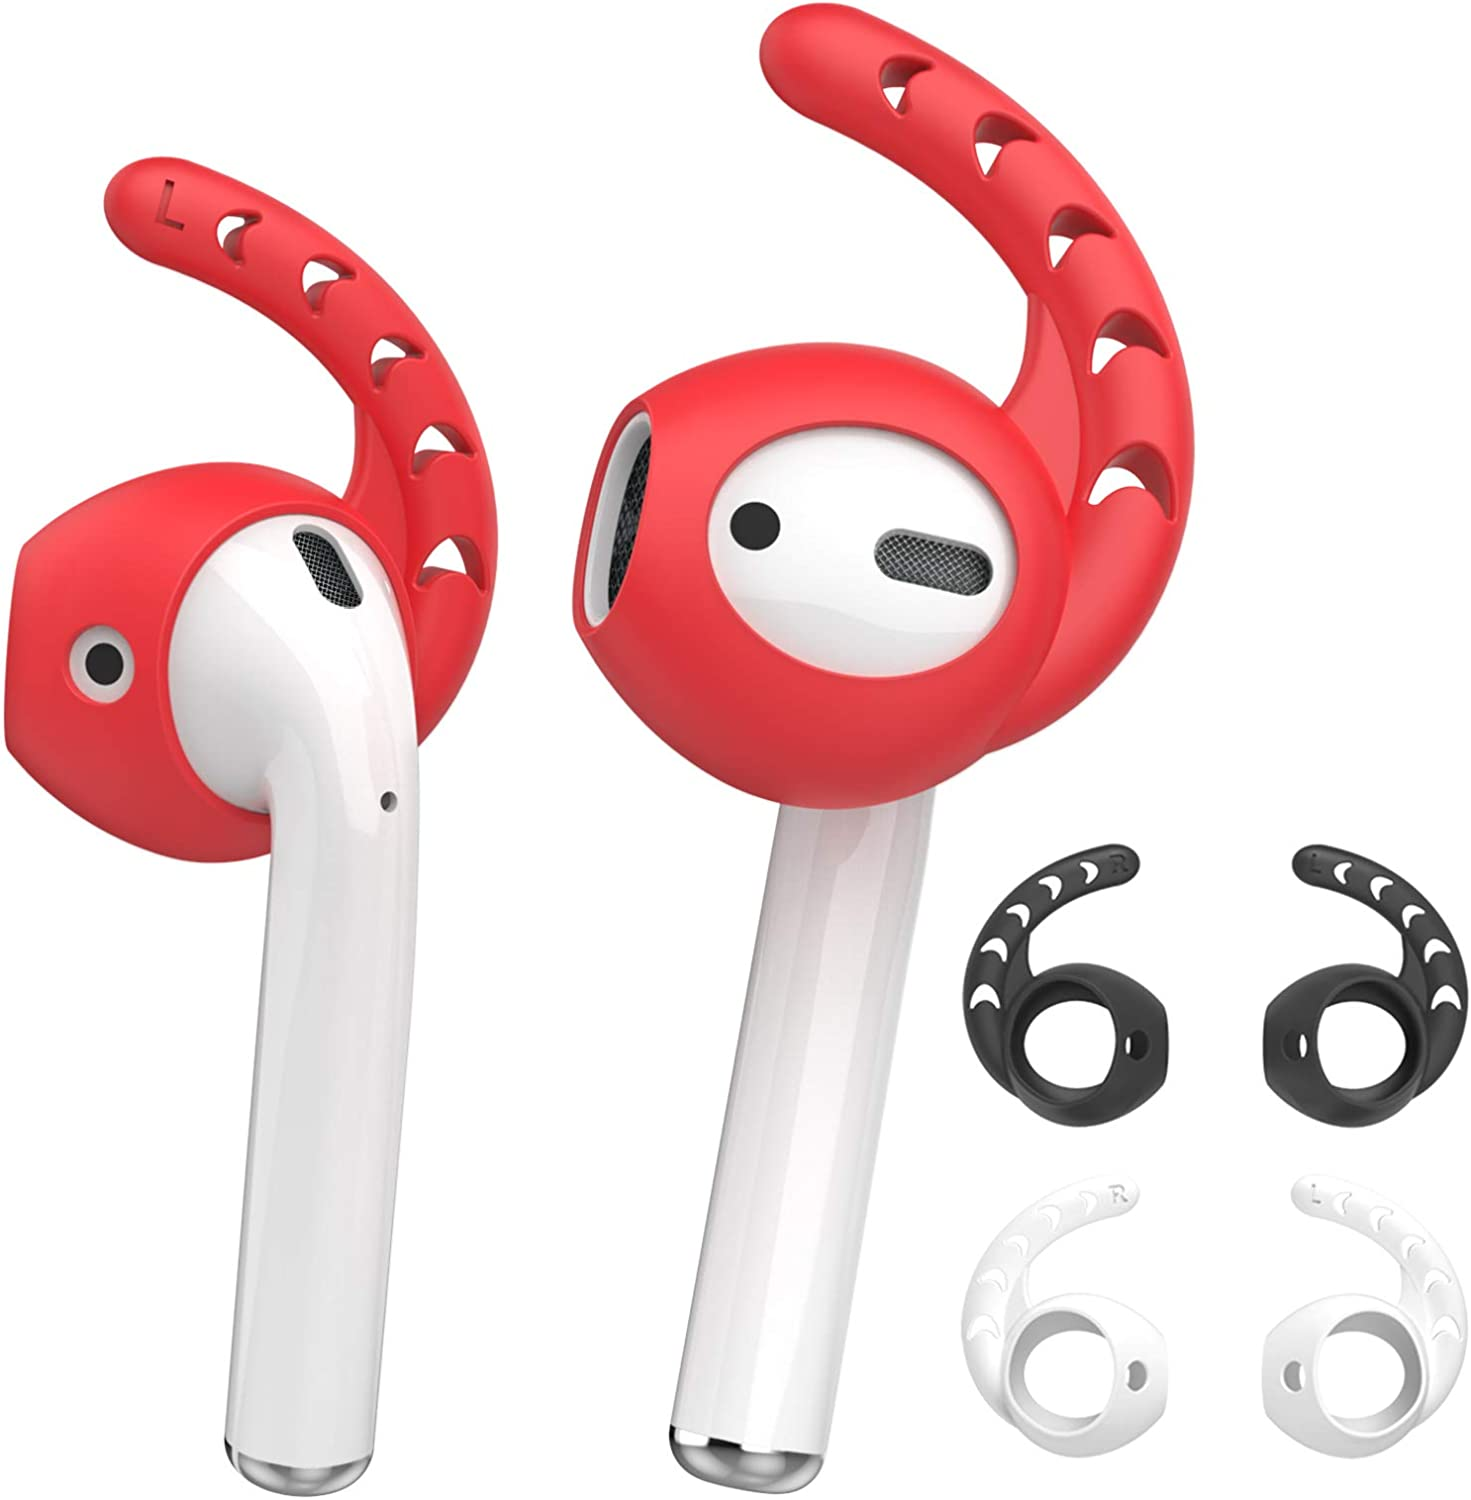 AhaStyle 3 Pairs Mixed Color AirPods Ear Hooks Silicone Accessories [ Added Storage Pouch] Compatible with AirPods/AirPods 2 or EarPods Headphones(Black,White,Red)